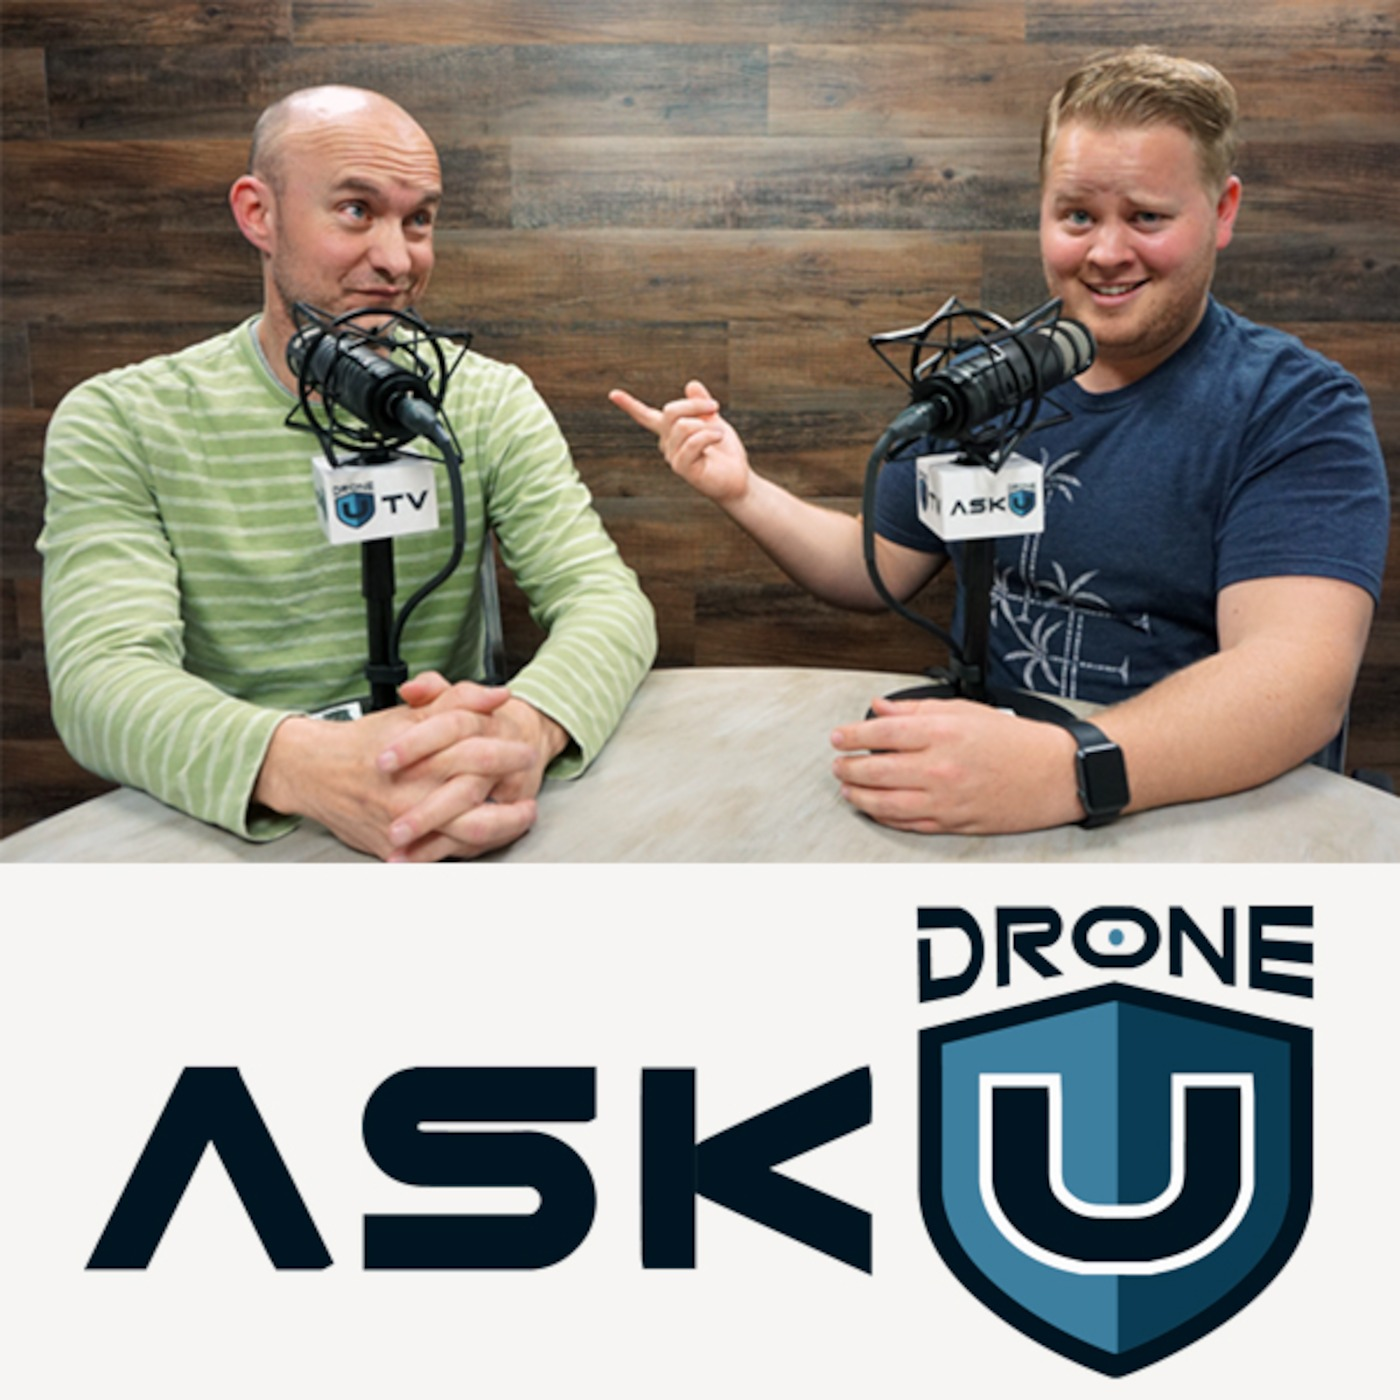 What are the legal ramifications of crashing you drone on private property?